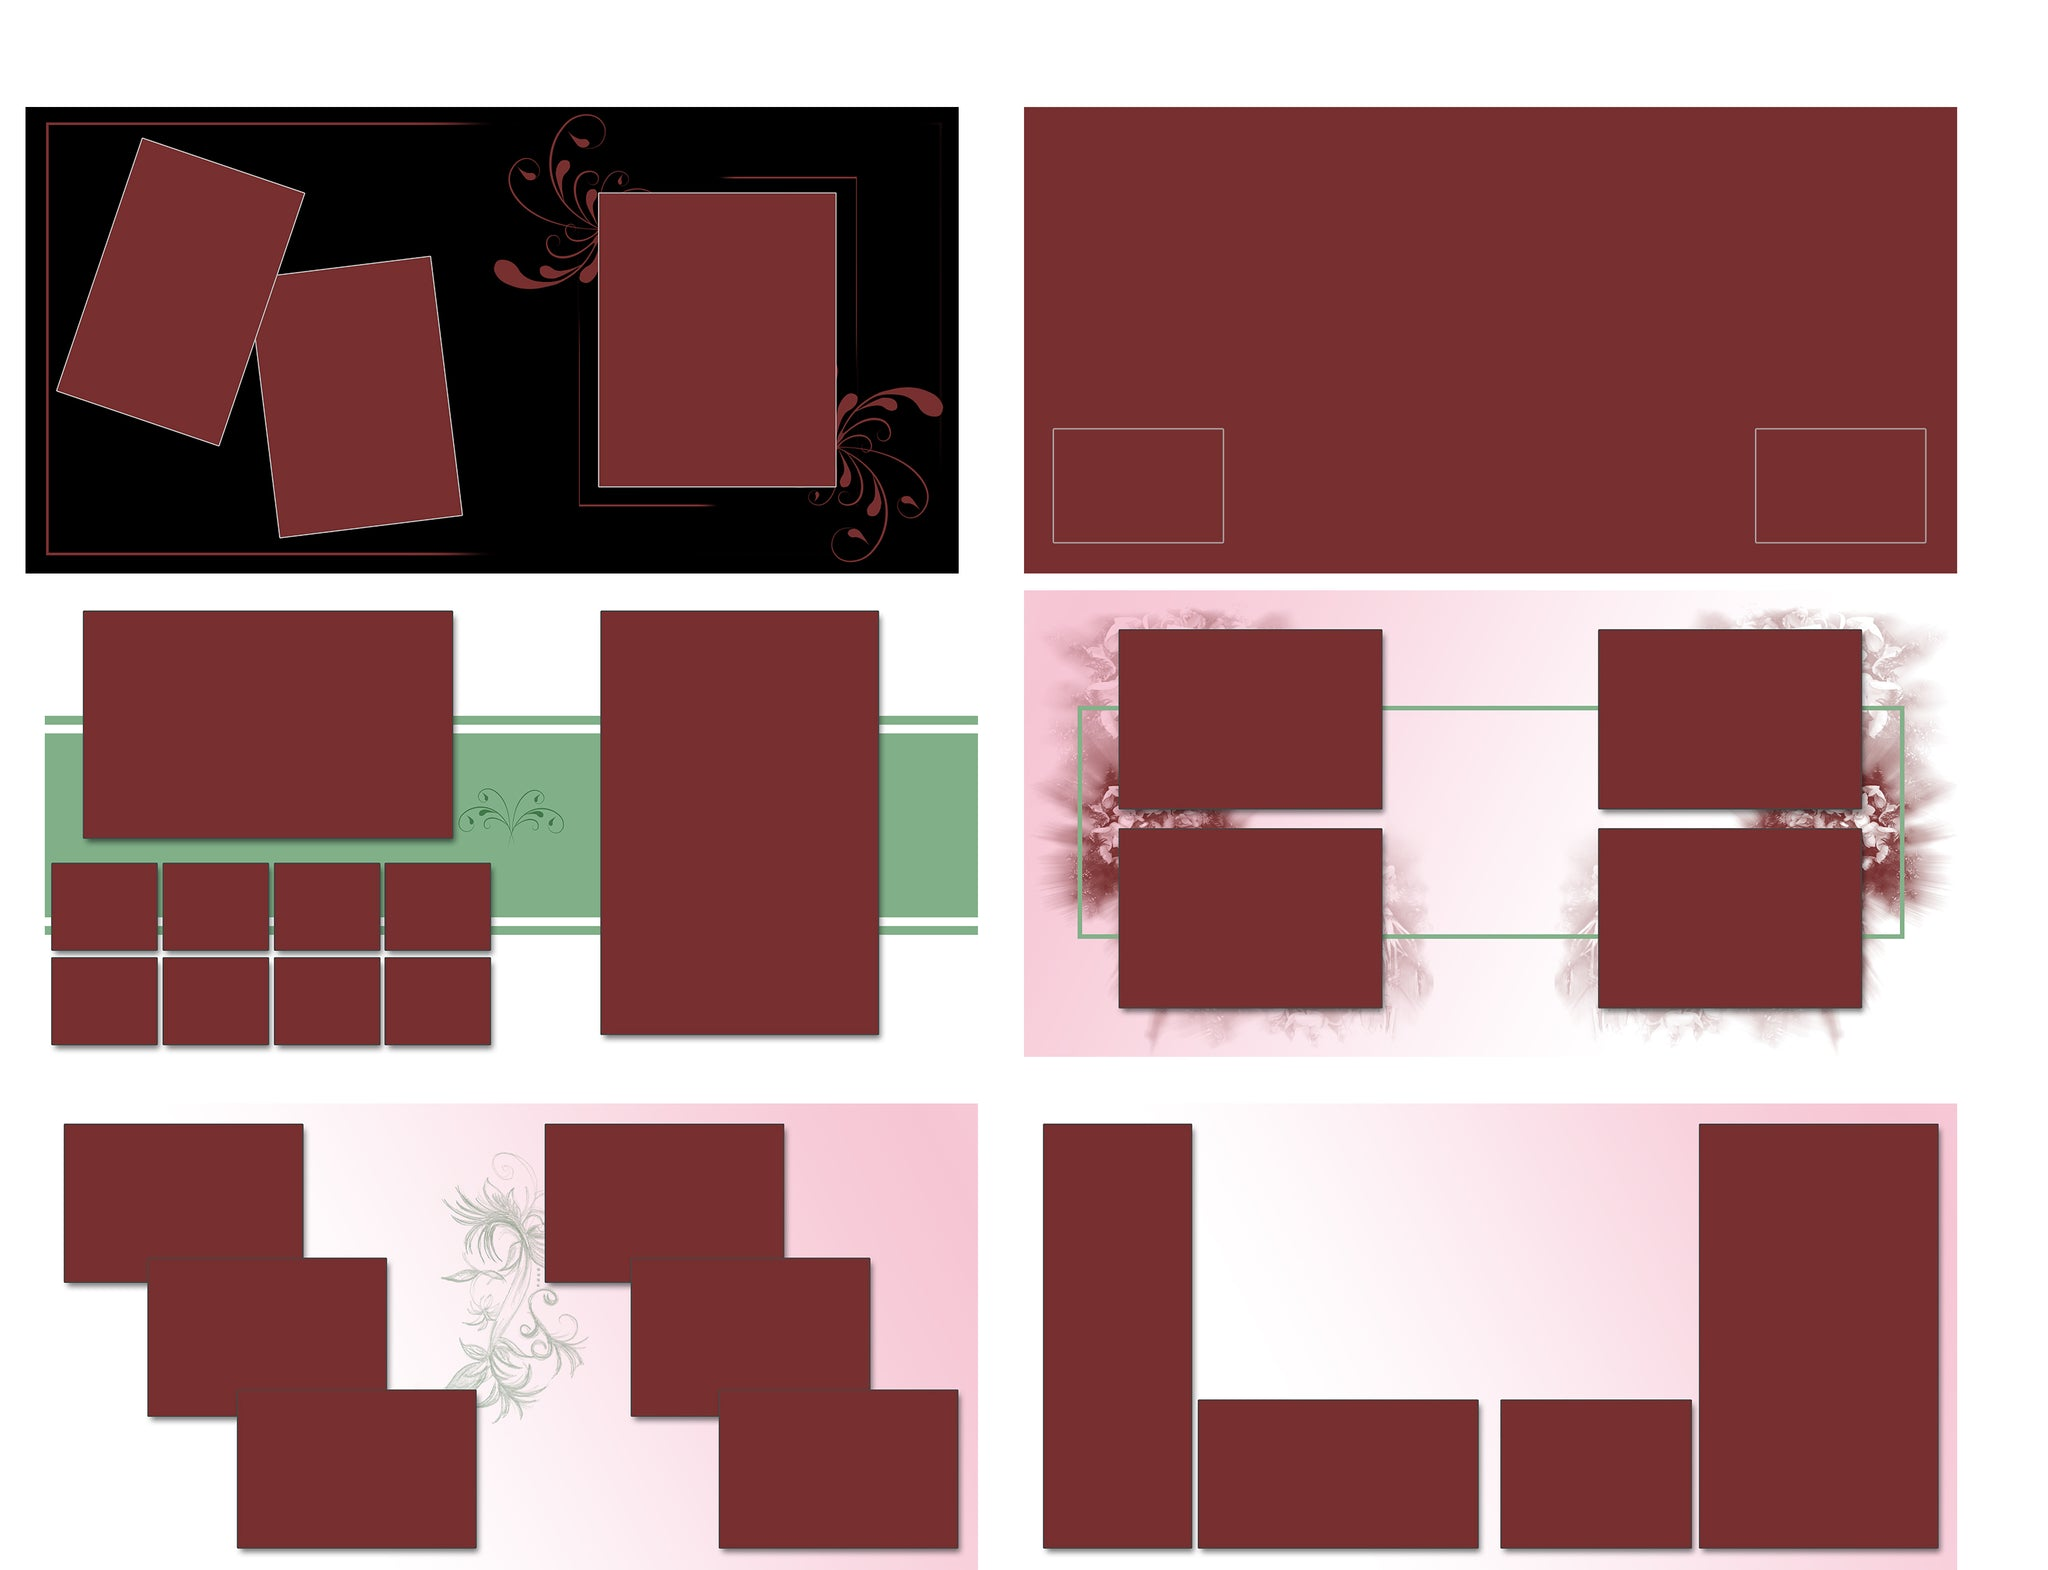 25 Rose StoryBoard Templates set 3